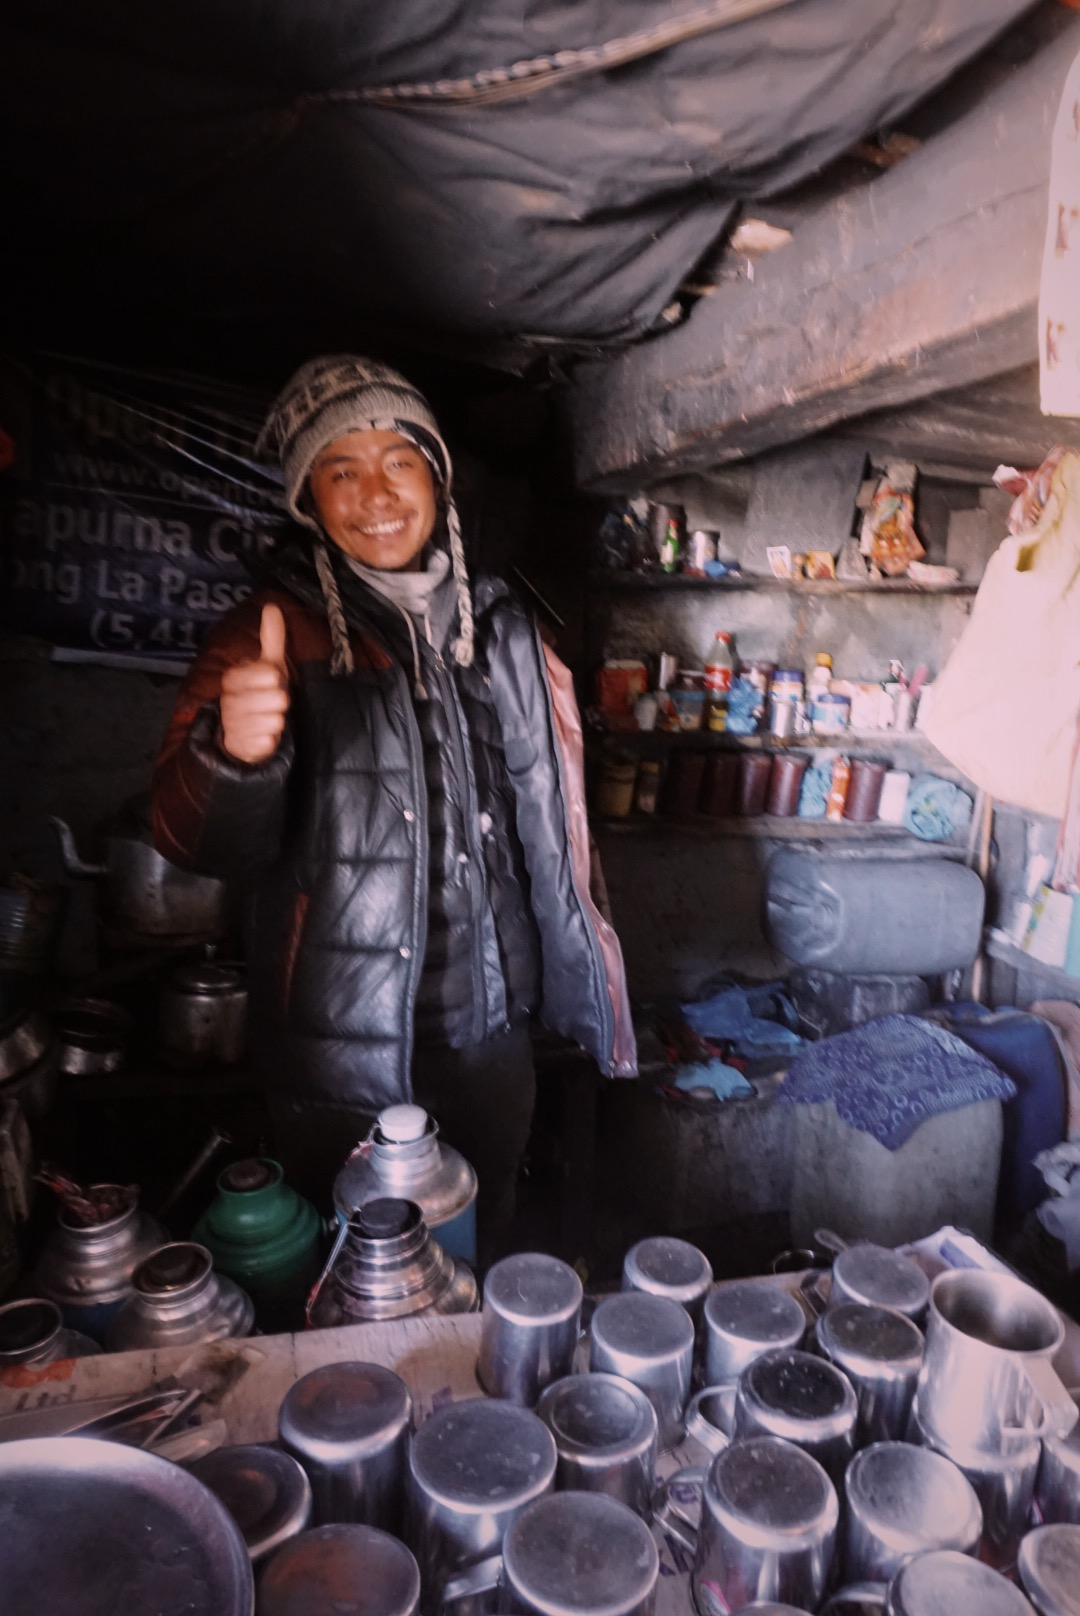 This is Sana. Four months out of every year he lives at Thorung La (5,416 m / 17,769 ft), serving tea and soup out of a small teahouse structure at the pass. Sometimes he hikes 1,000 feet below to have dinner with another lone teahouse operator, but word is Sana doesn't cook and lets his friend prepare the dal bhat instead.